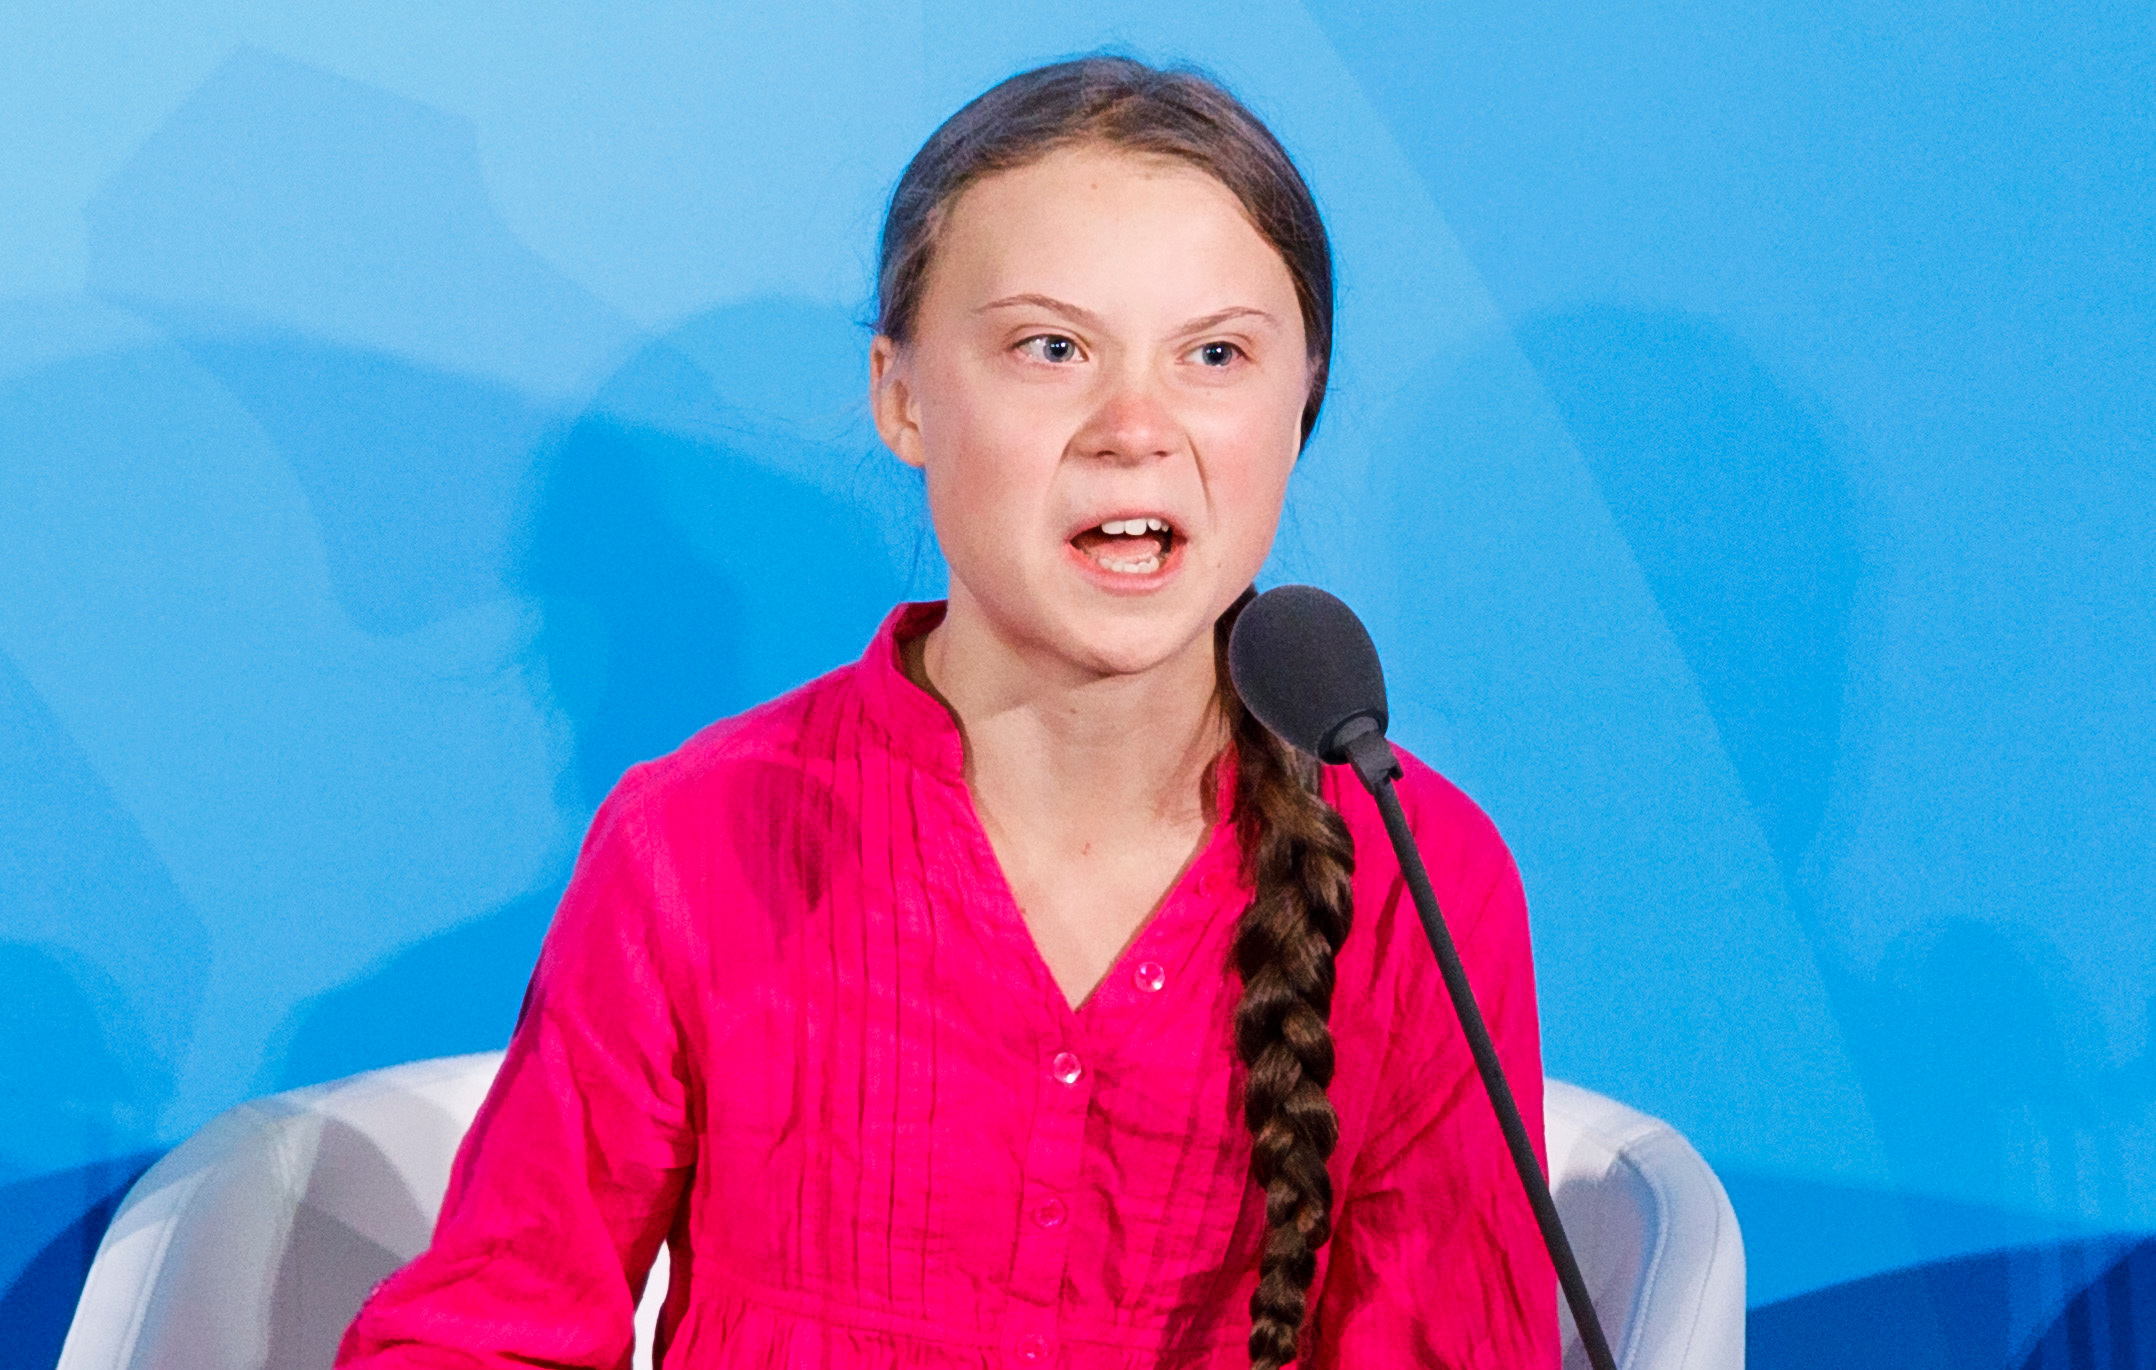 Greta Thunberg: 'How Dare You!' Heavy Metal Speech Sound Bites Are Now Ringtones for iPhone/Android!